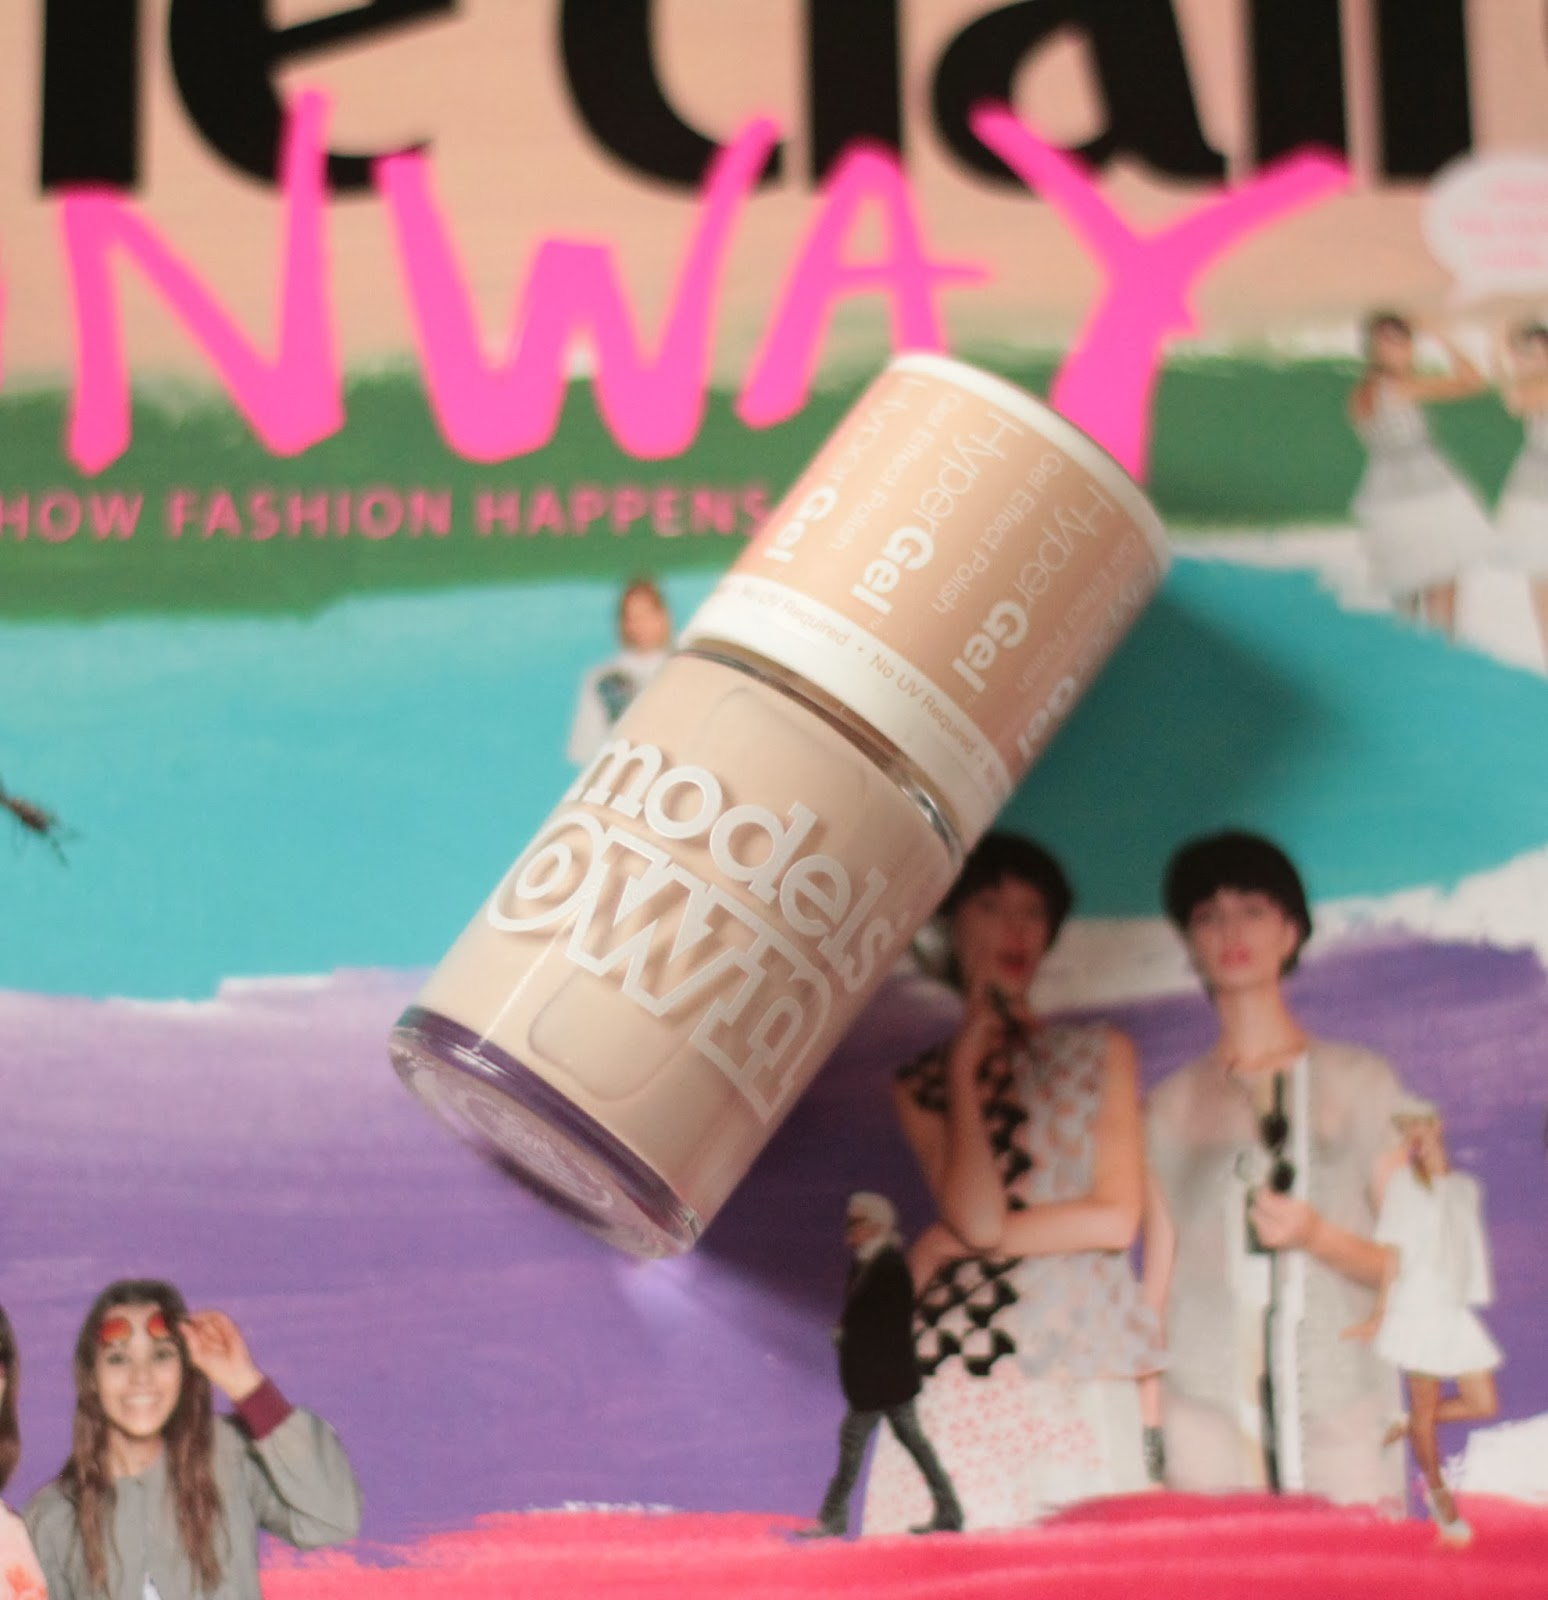 NOTD - Models Own Hypergel Naked Glow Swatches